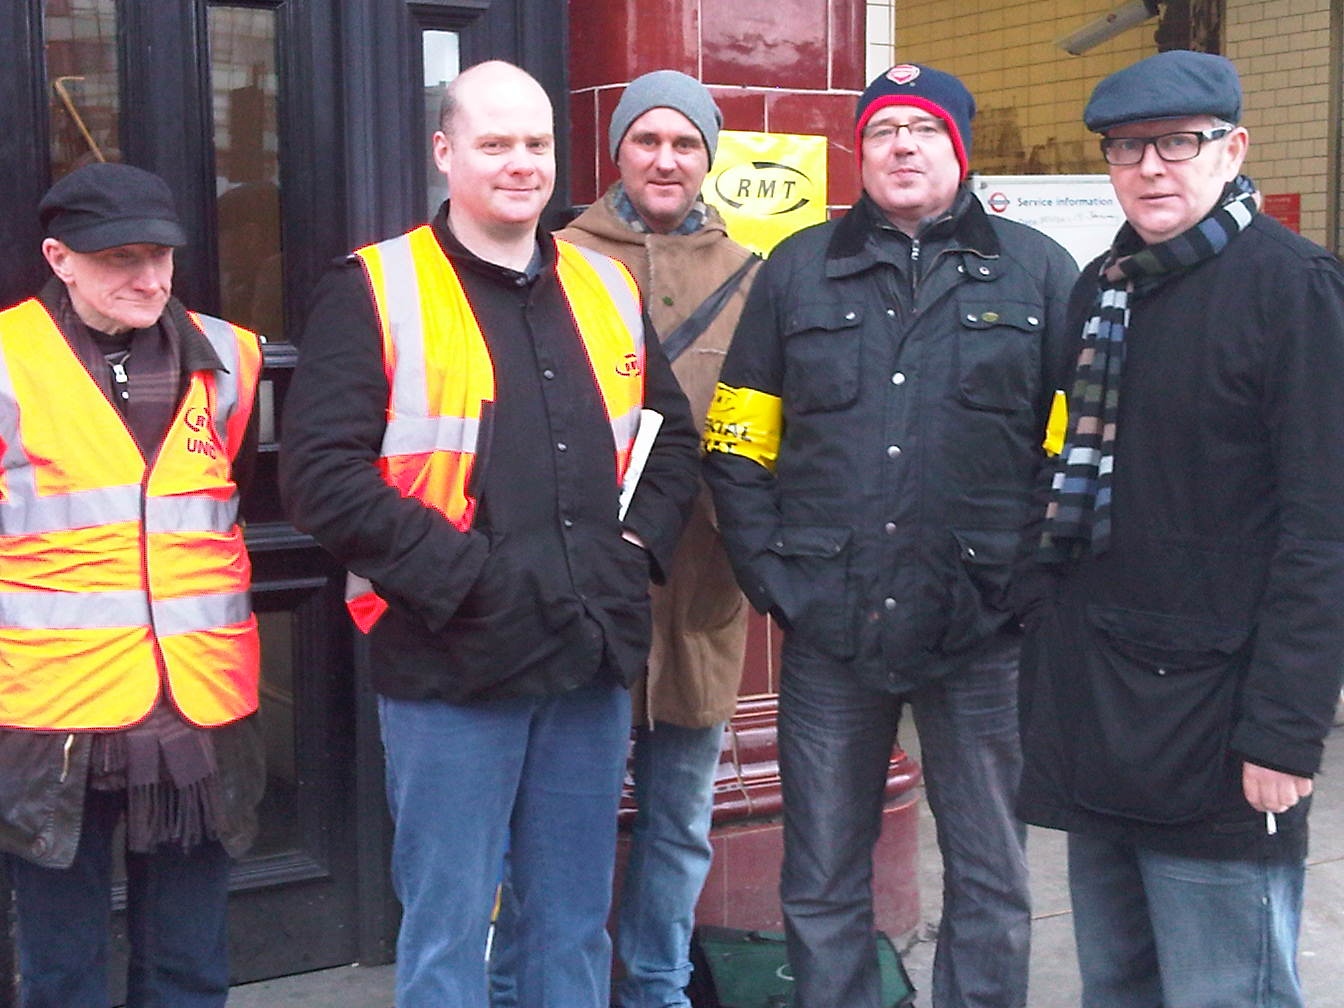 elephant and castle picket